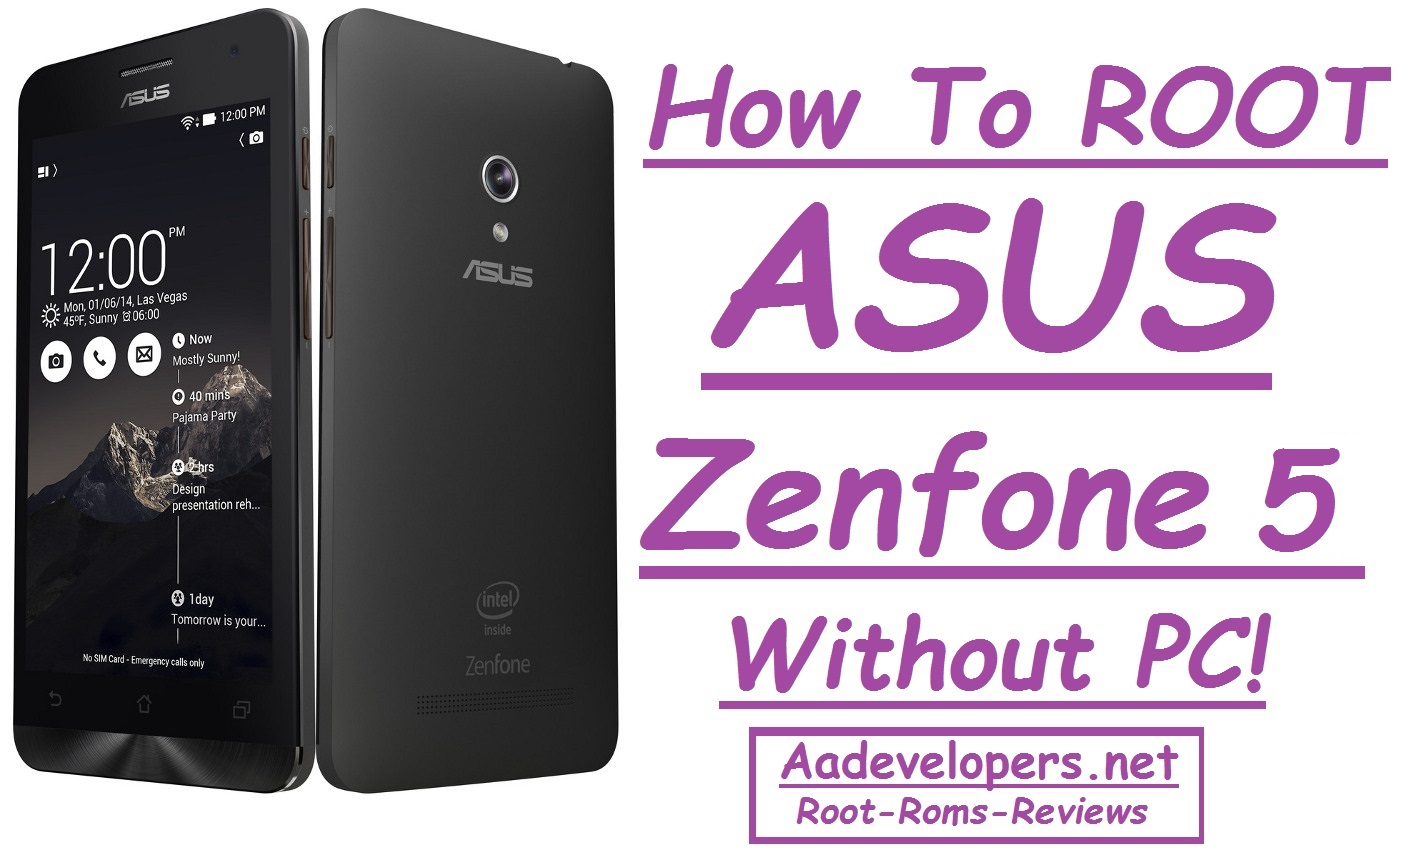 how to root zenfone 5 without pc – Aadevelopers